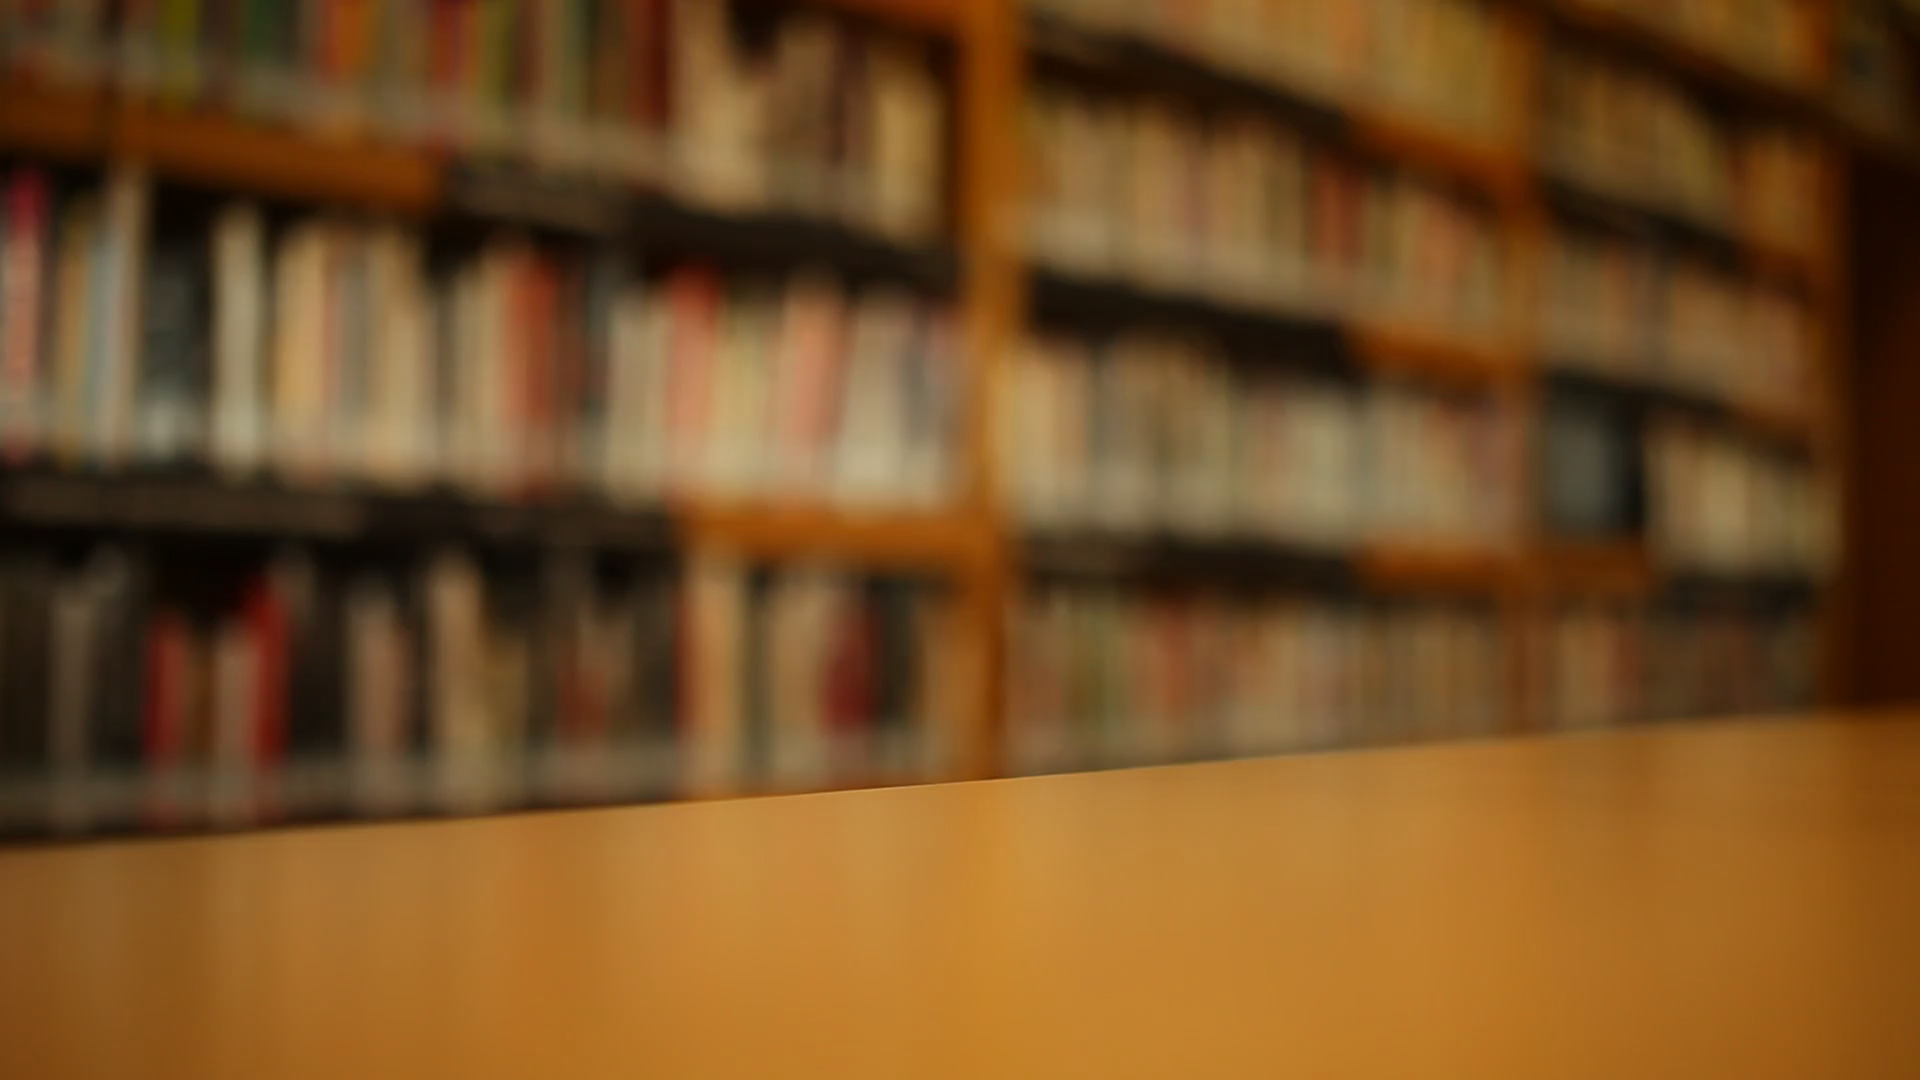 on-the-table-at-library-blurred-background_b0oedgtjl_thumbnail-full01